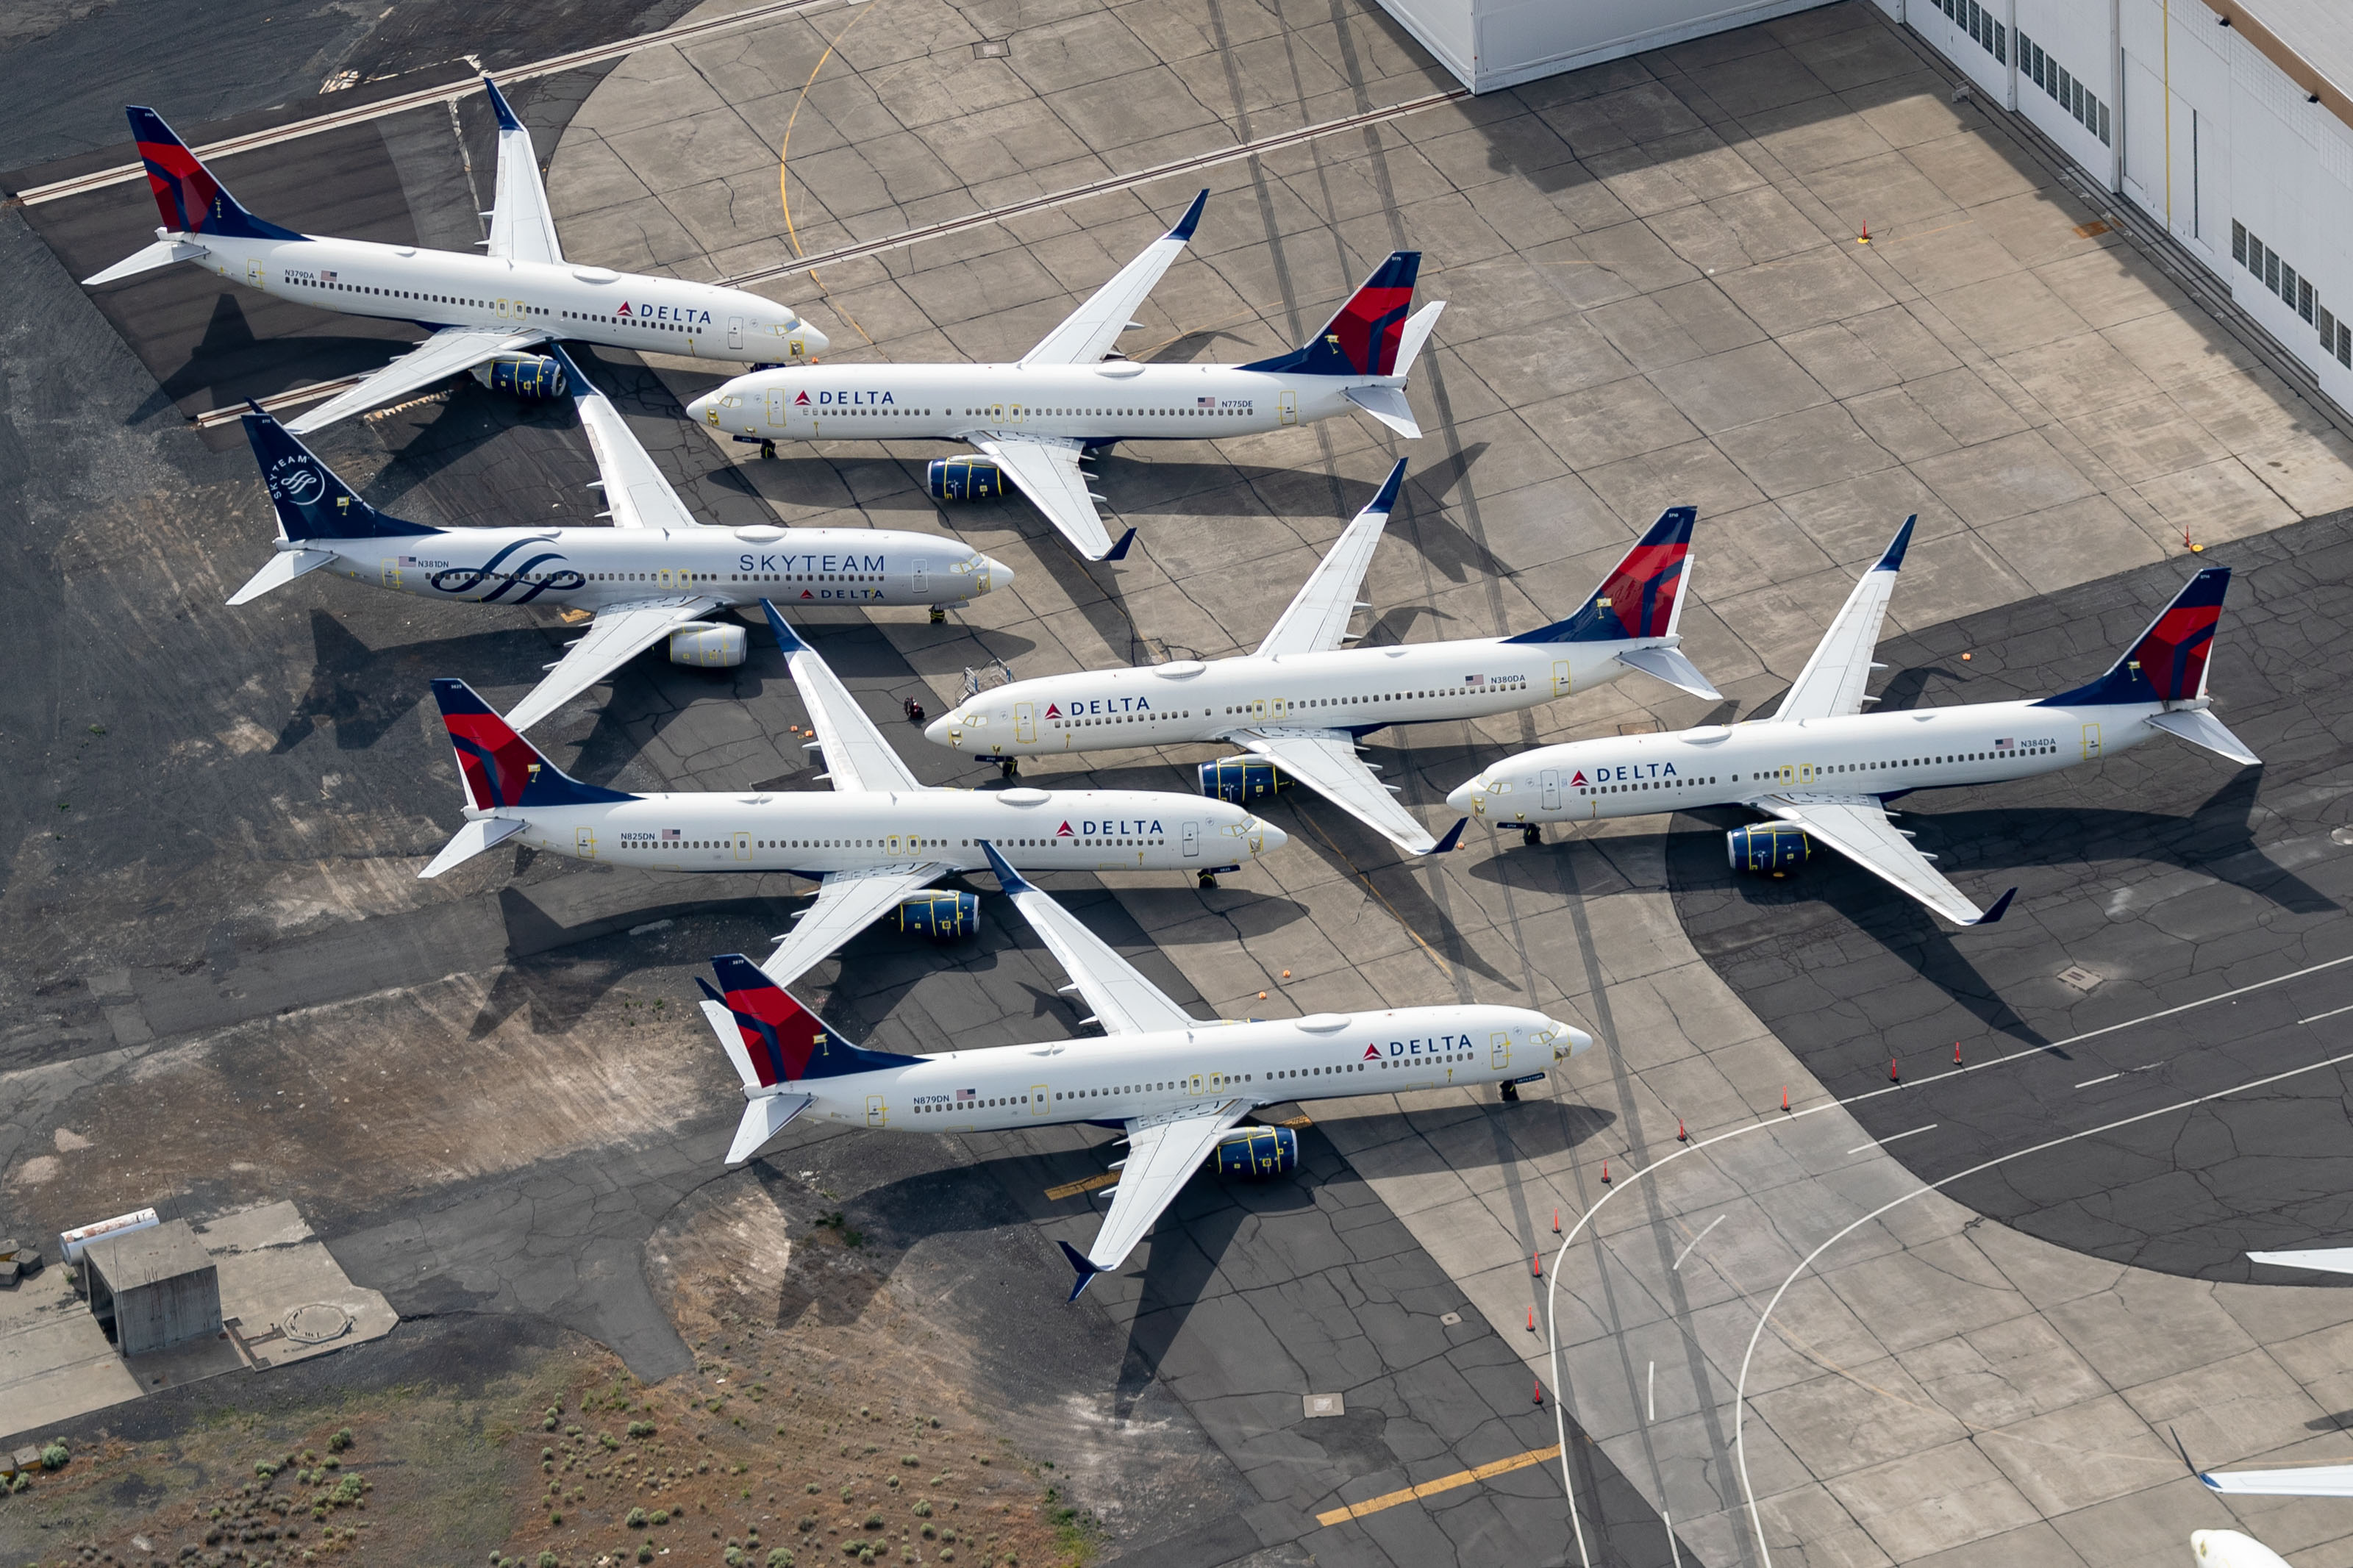 Delta Air Lines Boeing 737s are stored at Grant County Airport in Moses Lake, Wash. as airlines ride out the COVID-19 pandemic.